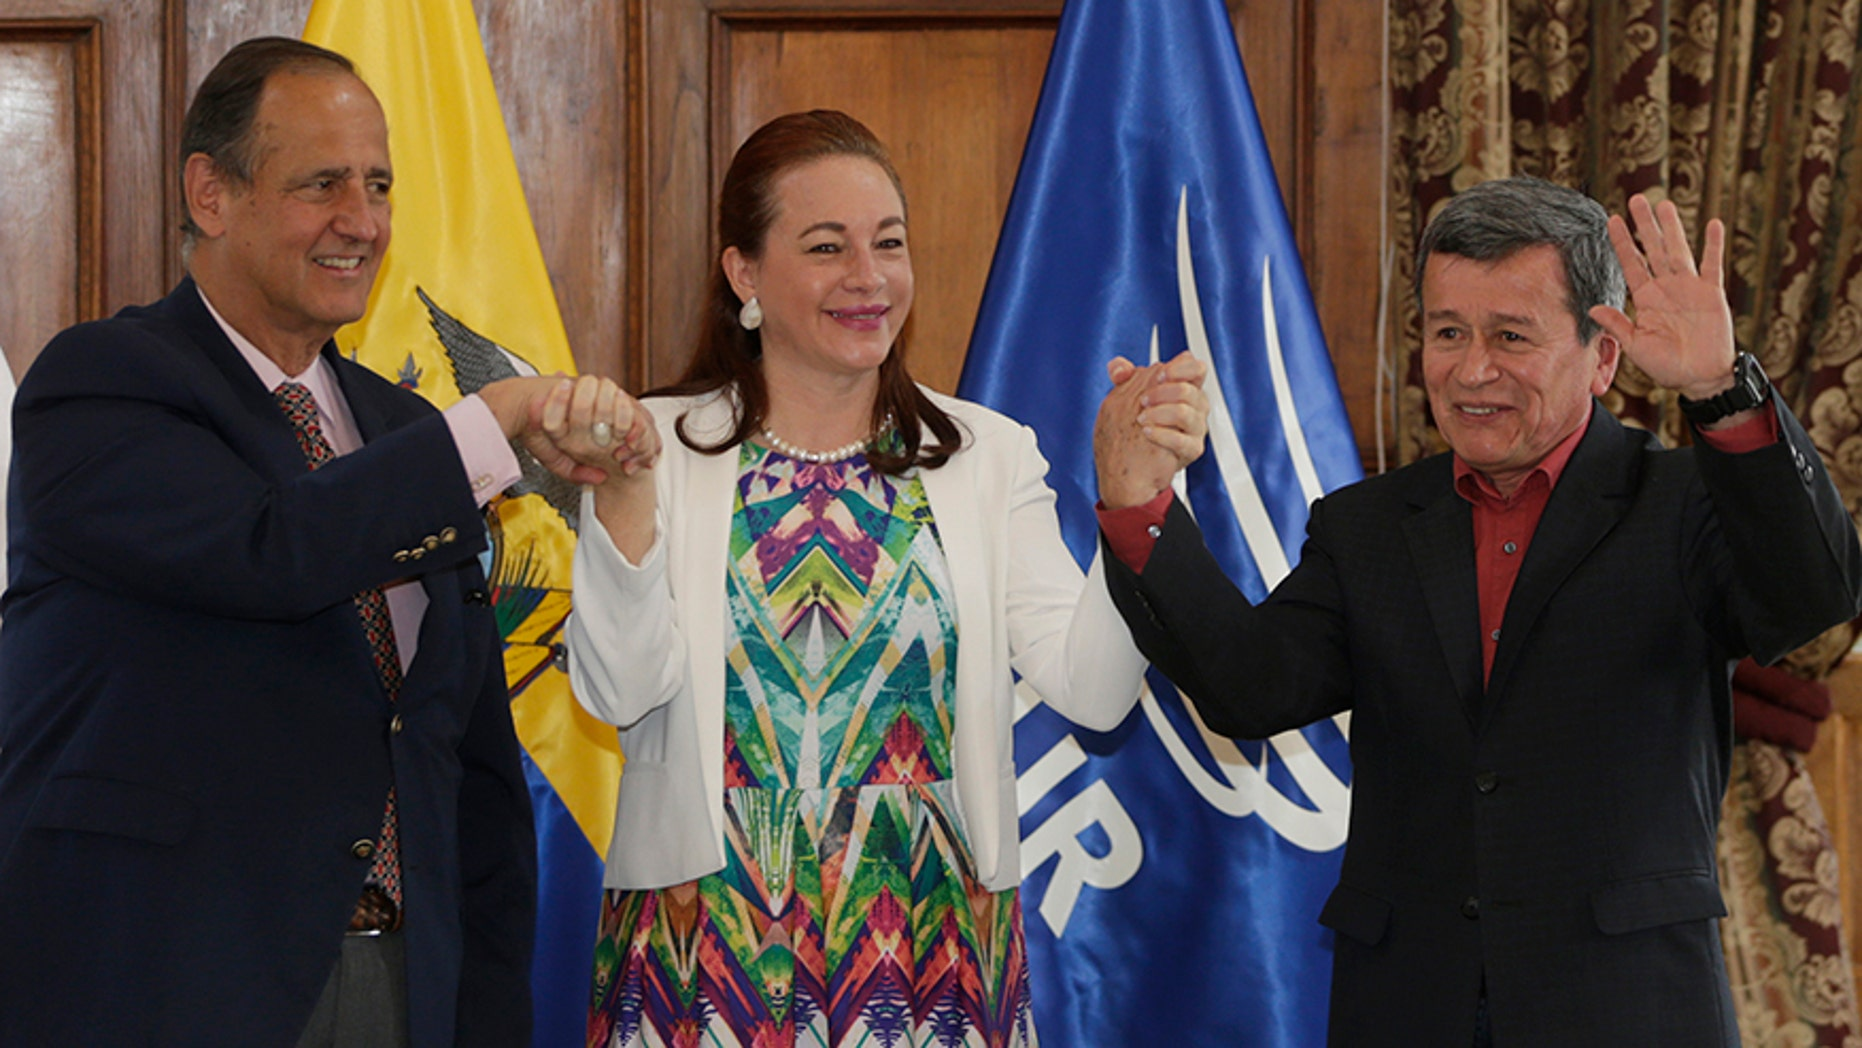 Ecuador's Foreign Minister Fernanda Espinosa stands between ELN rebel leader Pablo Beltran, right, and Colombia's government representative Juan Camilo Restrepo at the end of a press conference announcing the signing of a cease-fire in Quito, Ecuador, Monday, Sept. 4, 2017. Colombia's government and last remaining major rebel group signed a bilateral cease-fire Monday ahead of Pope Francis' visit this week, an agreement seen as a significant step toward negotiating a permanent peace deal. (AP Photo/Dolores Ochoa)